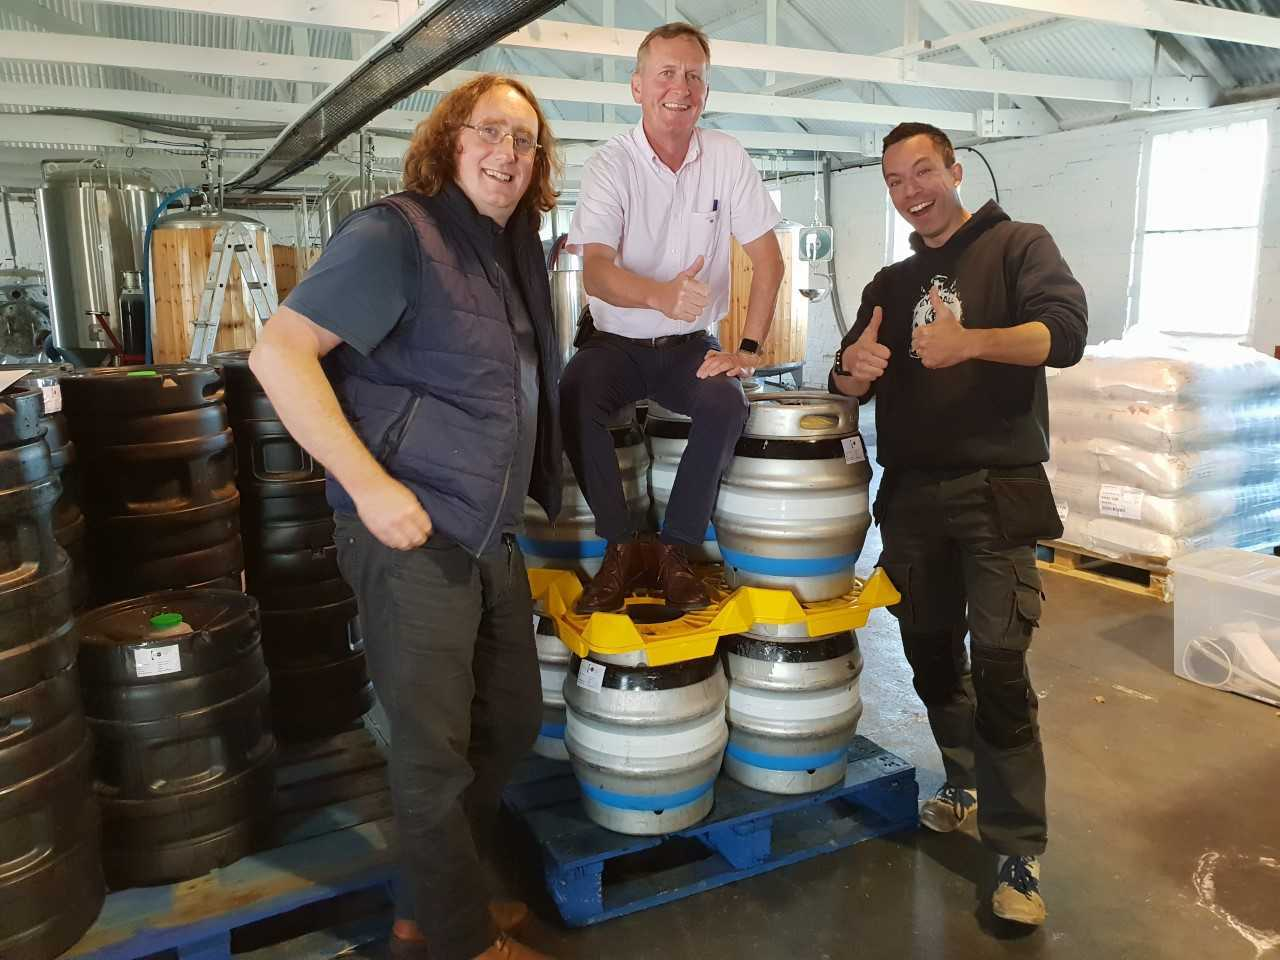 Beers and ciders will be on offer when the Nether Abbey Beer Festival returns next month. Pictured, from left: Peter Stuart, from Thistly Cross Cider, Stirling Stewart, of Nether Abbey Hotel, and James Dempsey, from Eyeball Brewing